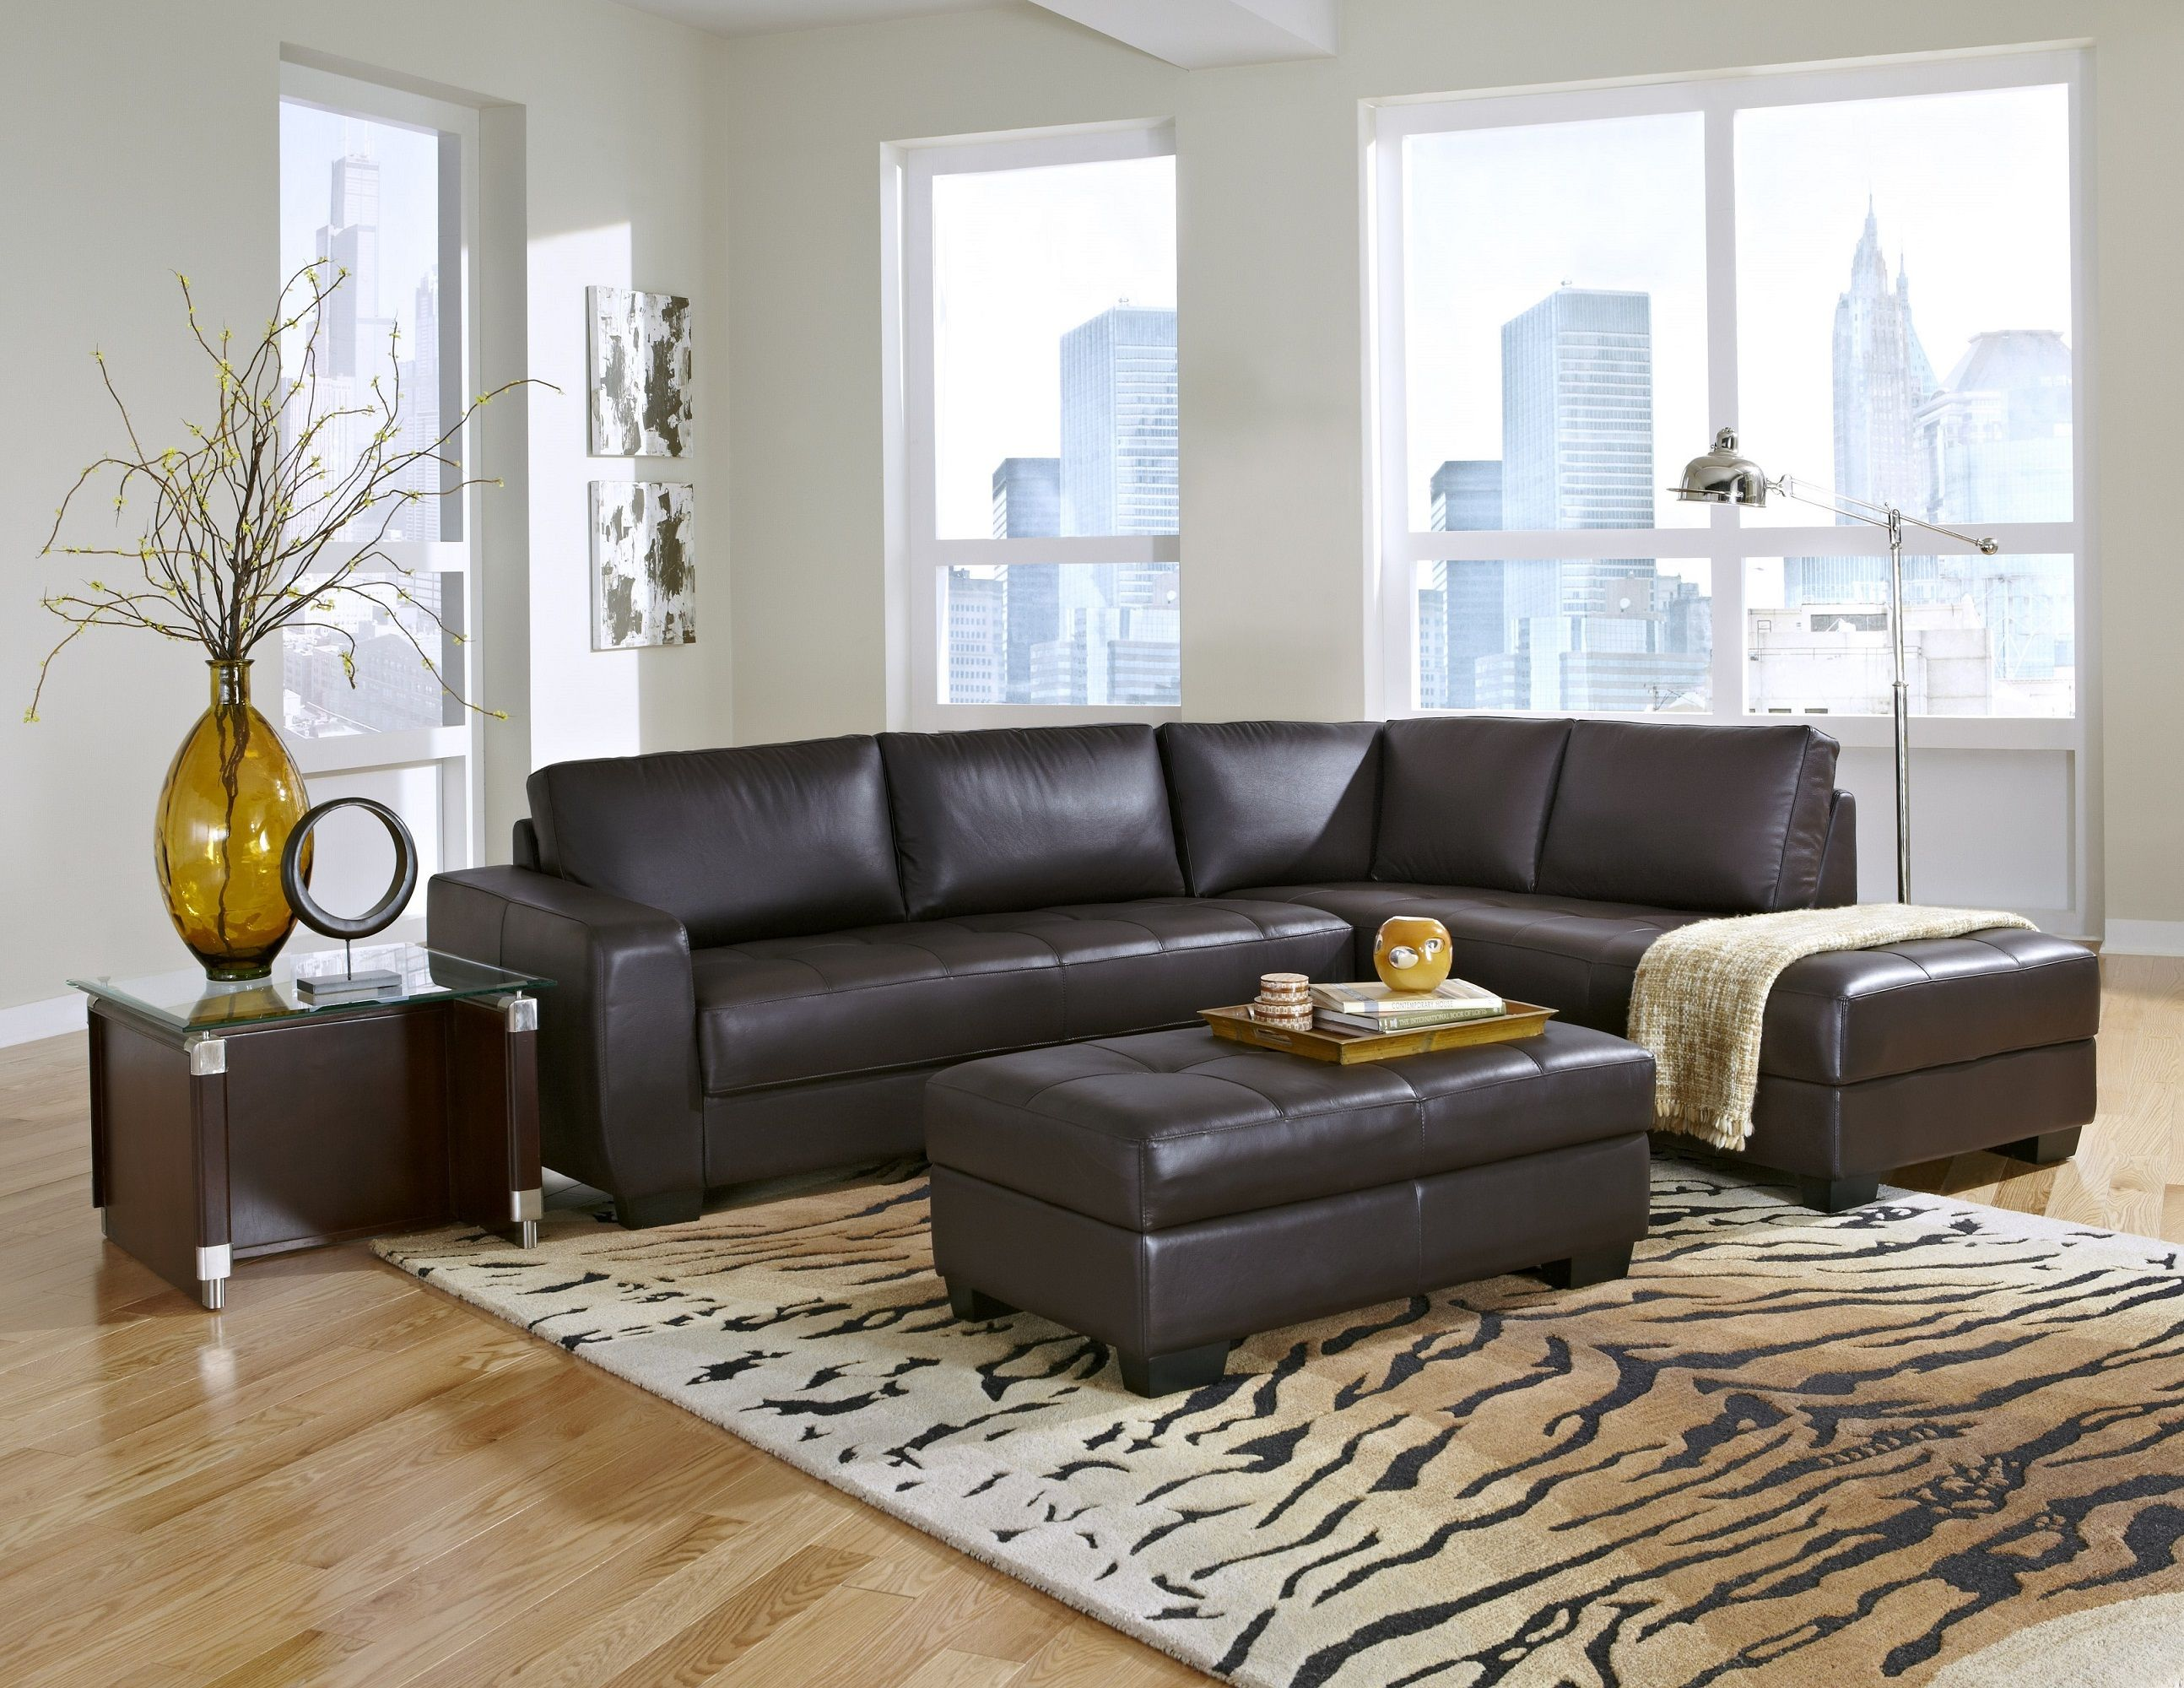 Espresso All Leather Sectional Sofa Group Ideas for Mike. Ergonomic Living Room Furniture Home. The Cg House by Glr Arquitectos Interiorbrown. Design Salon Moderne Jaune Exterieurhome Colors